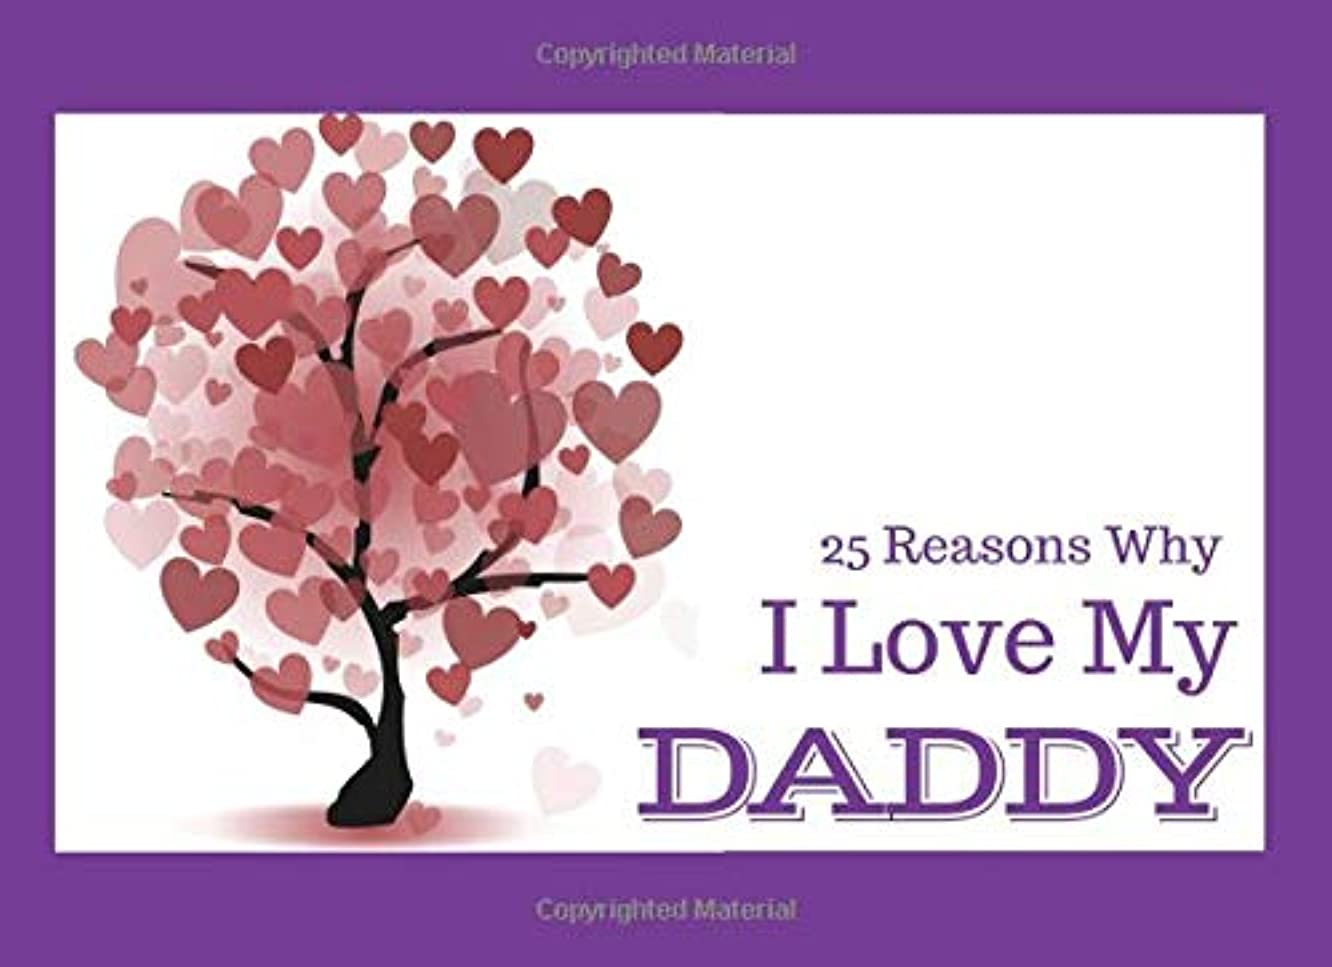 25 Reasons Why I Love My Daddy: What I Love About You Book - Colorful inspiring pages with prompts - Fill in the blanks to make a unique gift for Daddy on his Birthday or at Christmas